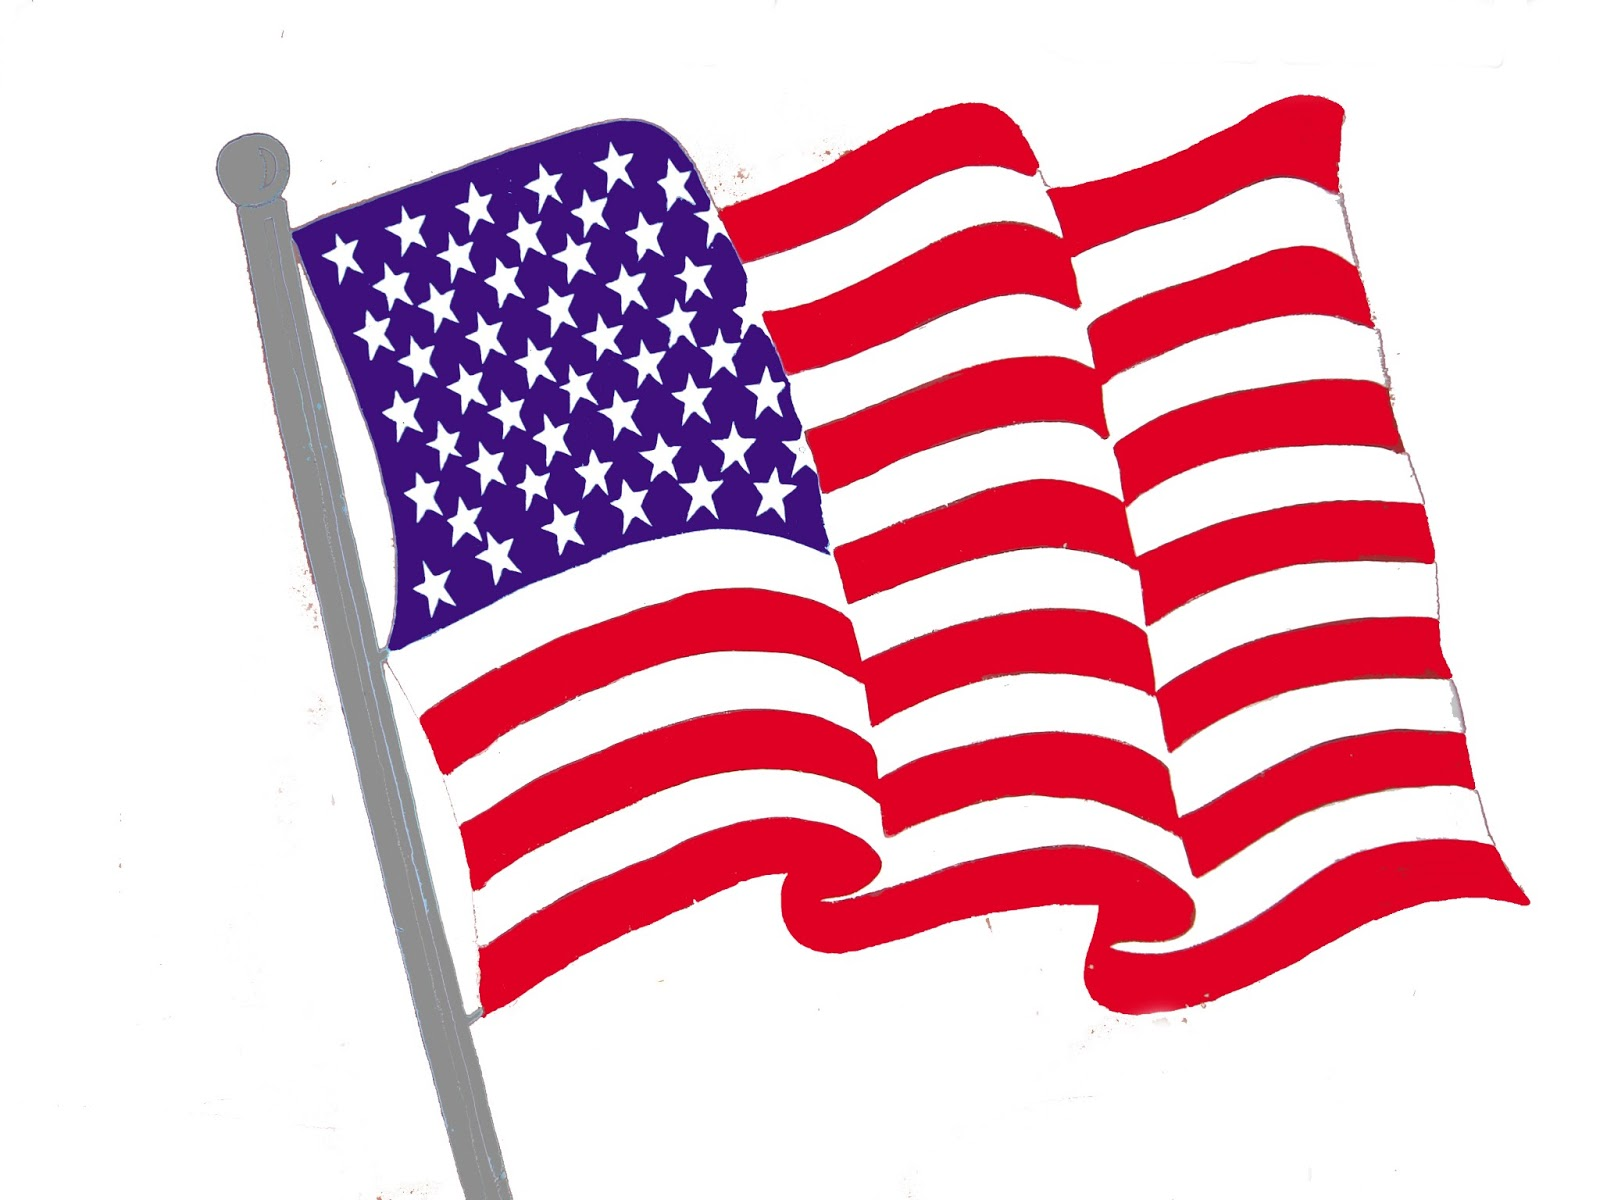 free animated clip art american flag - photo #22